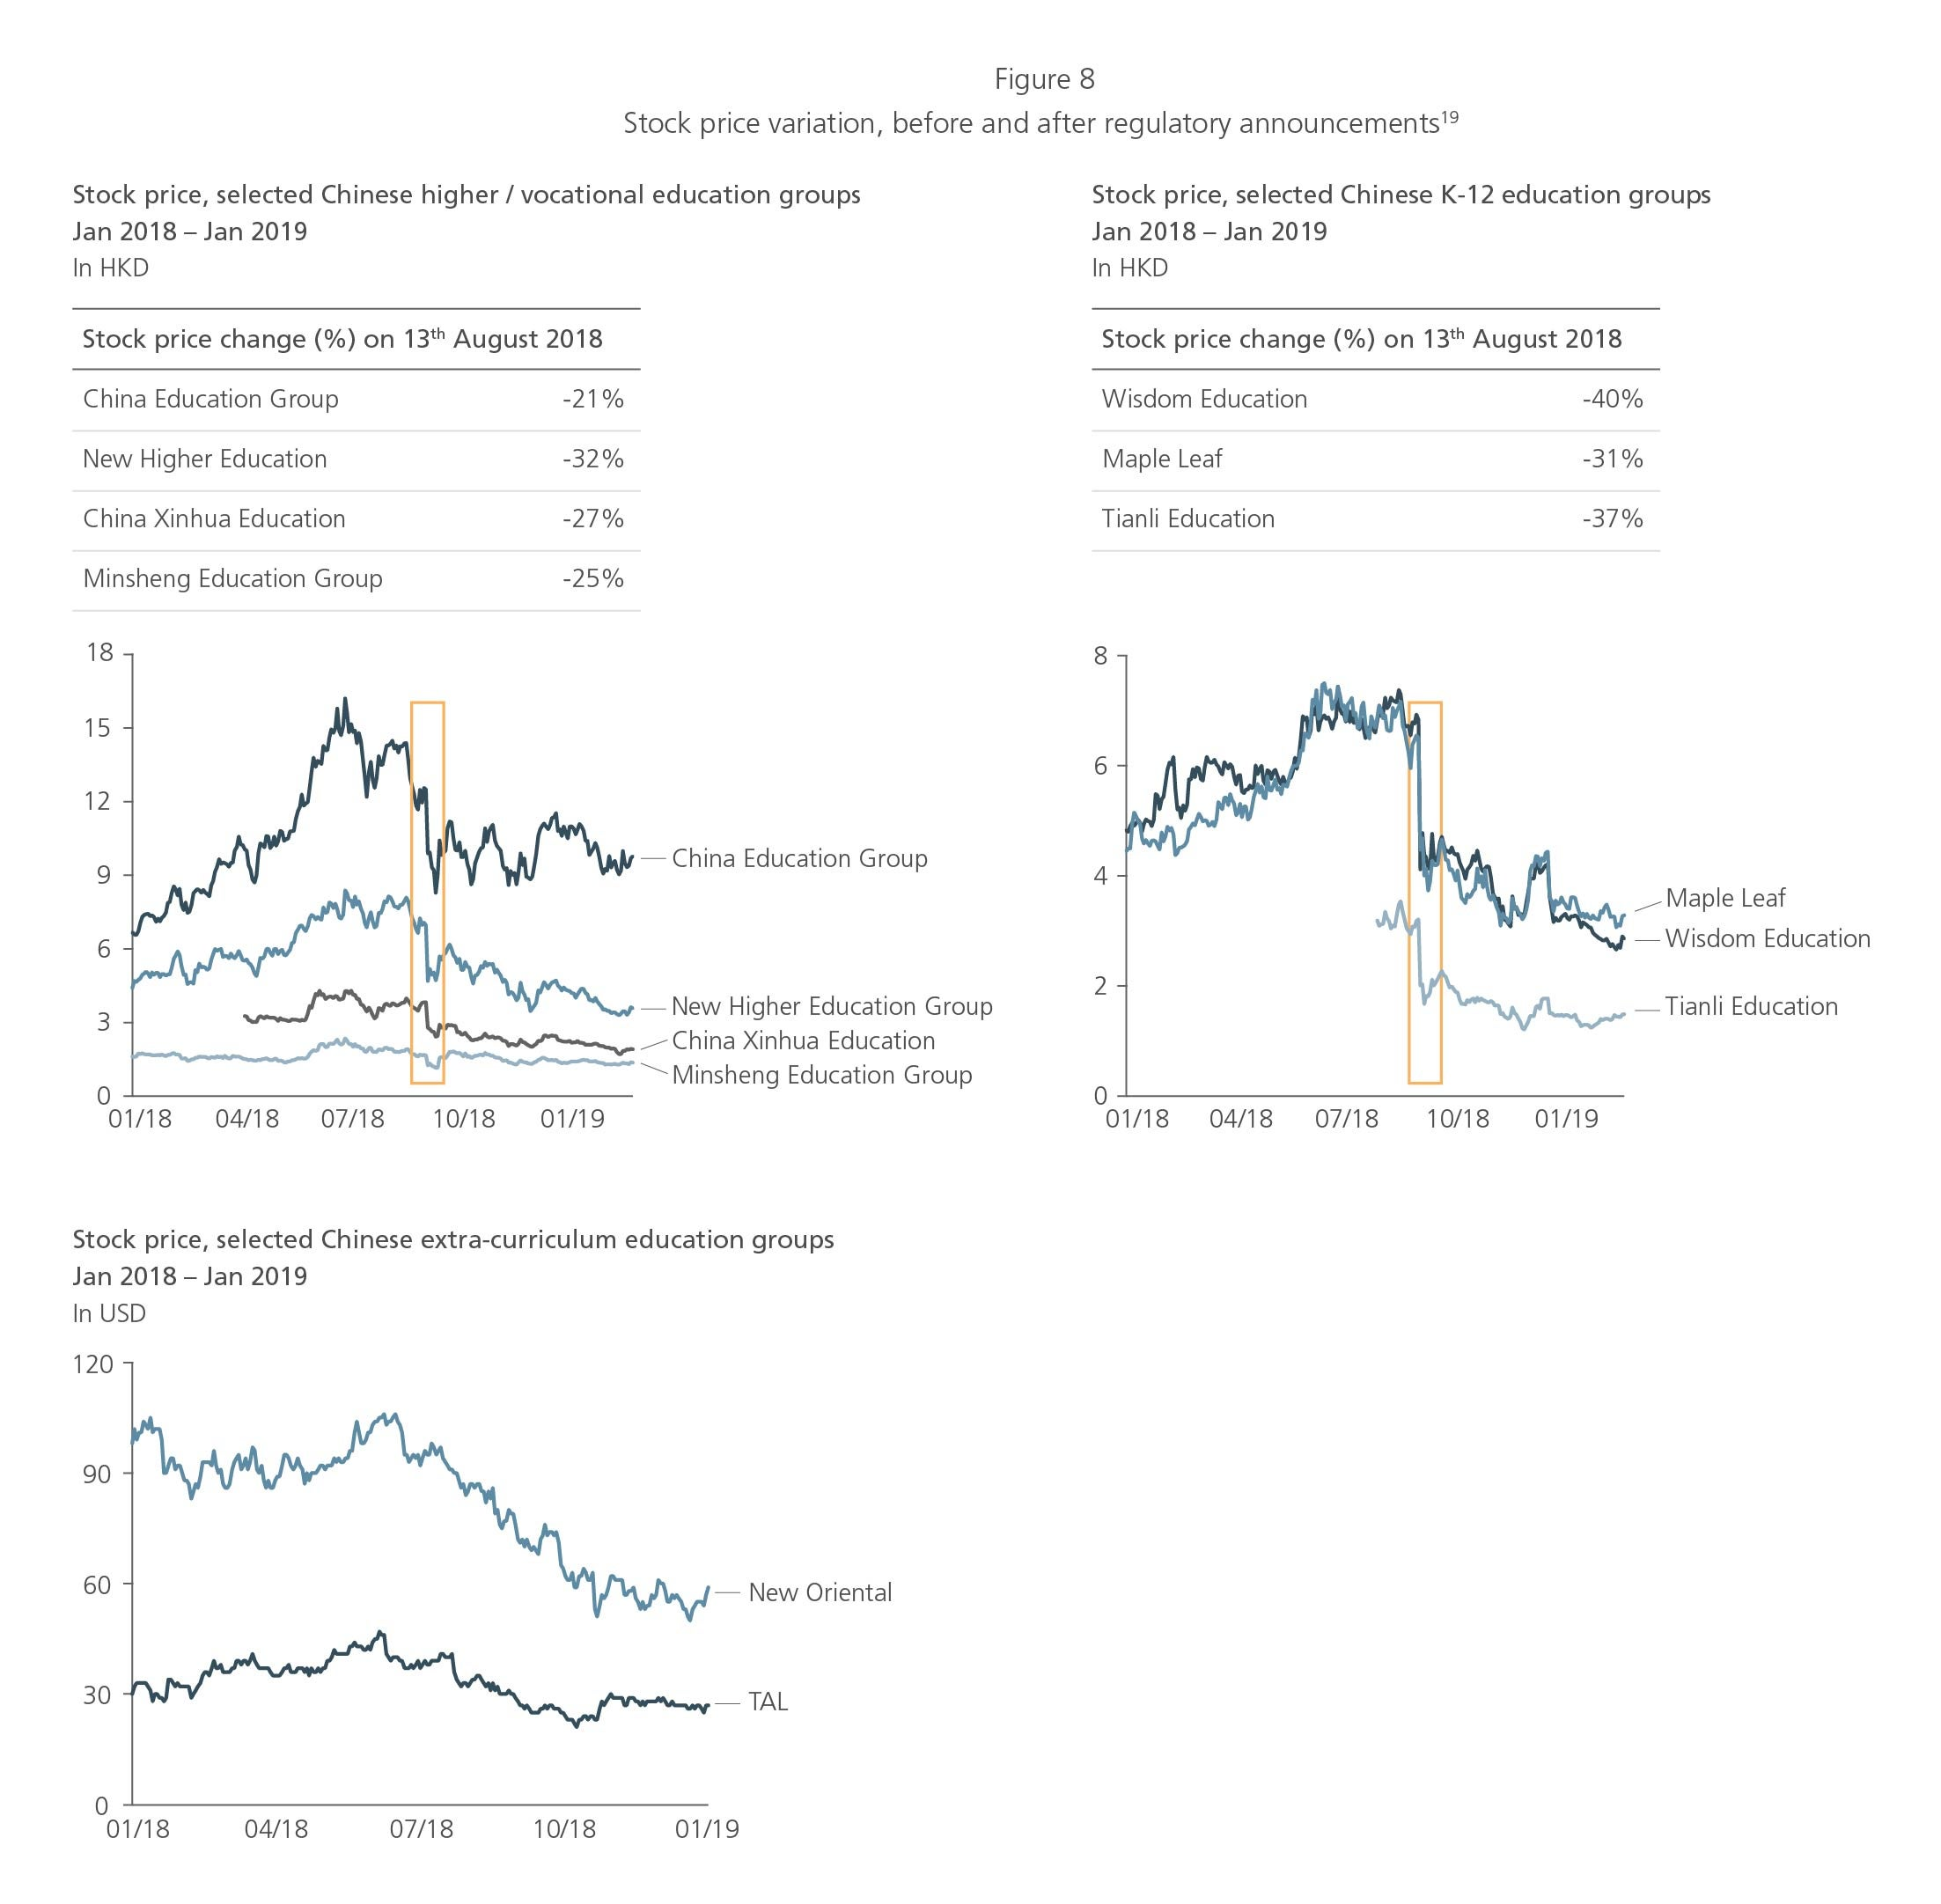 Stock price variation before and after regulatory announcements